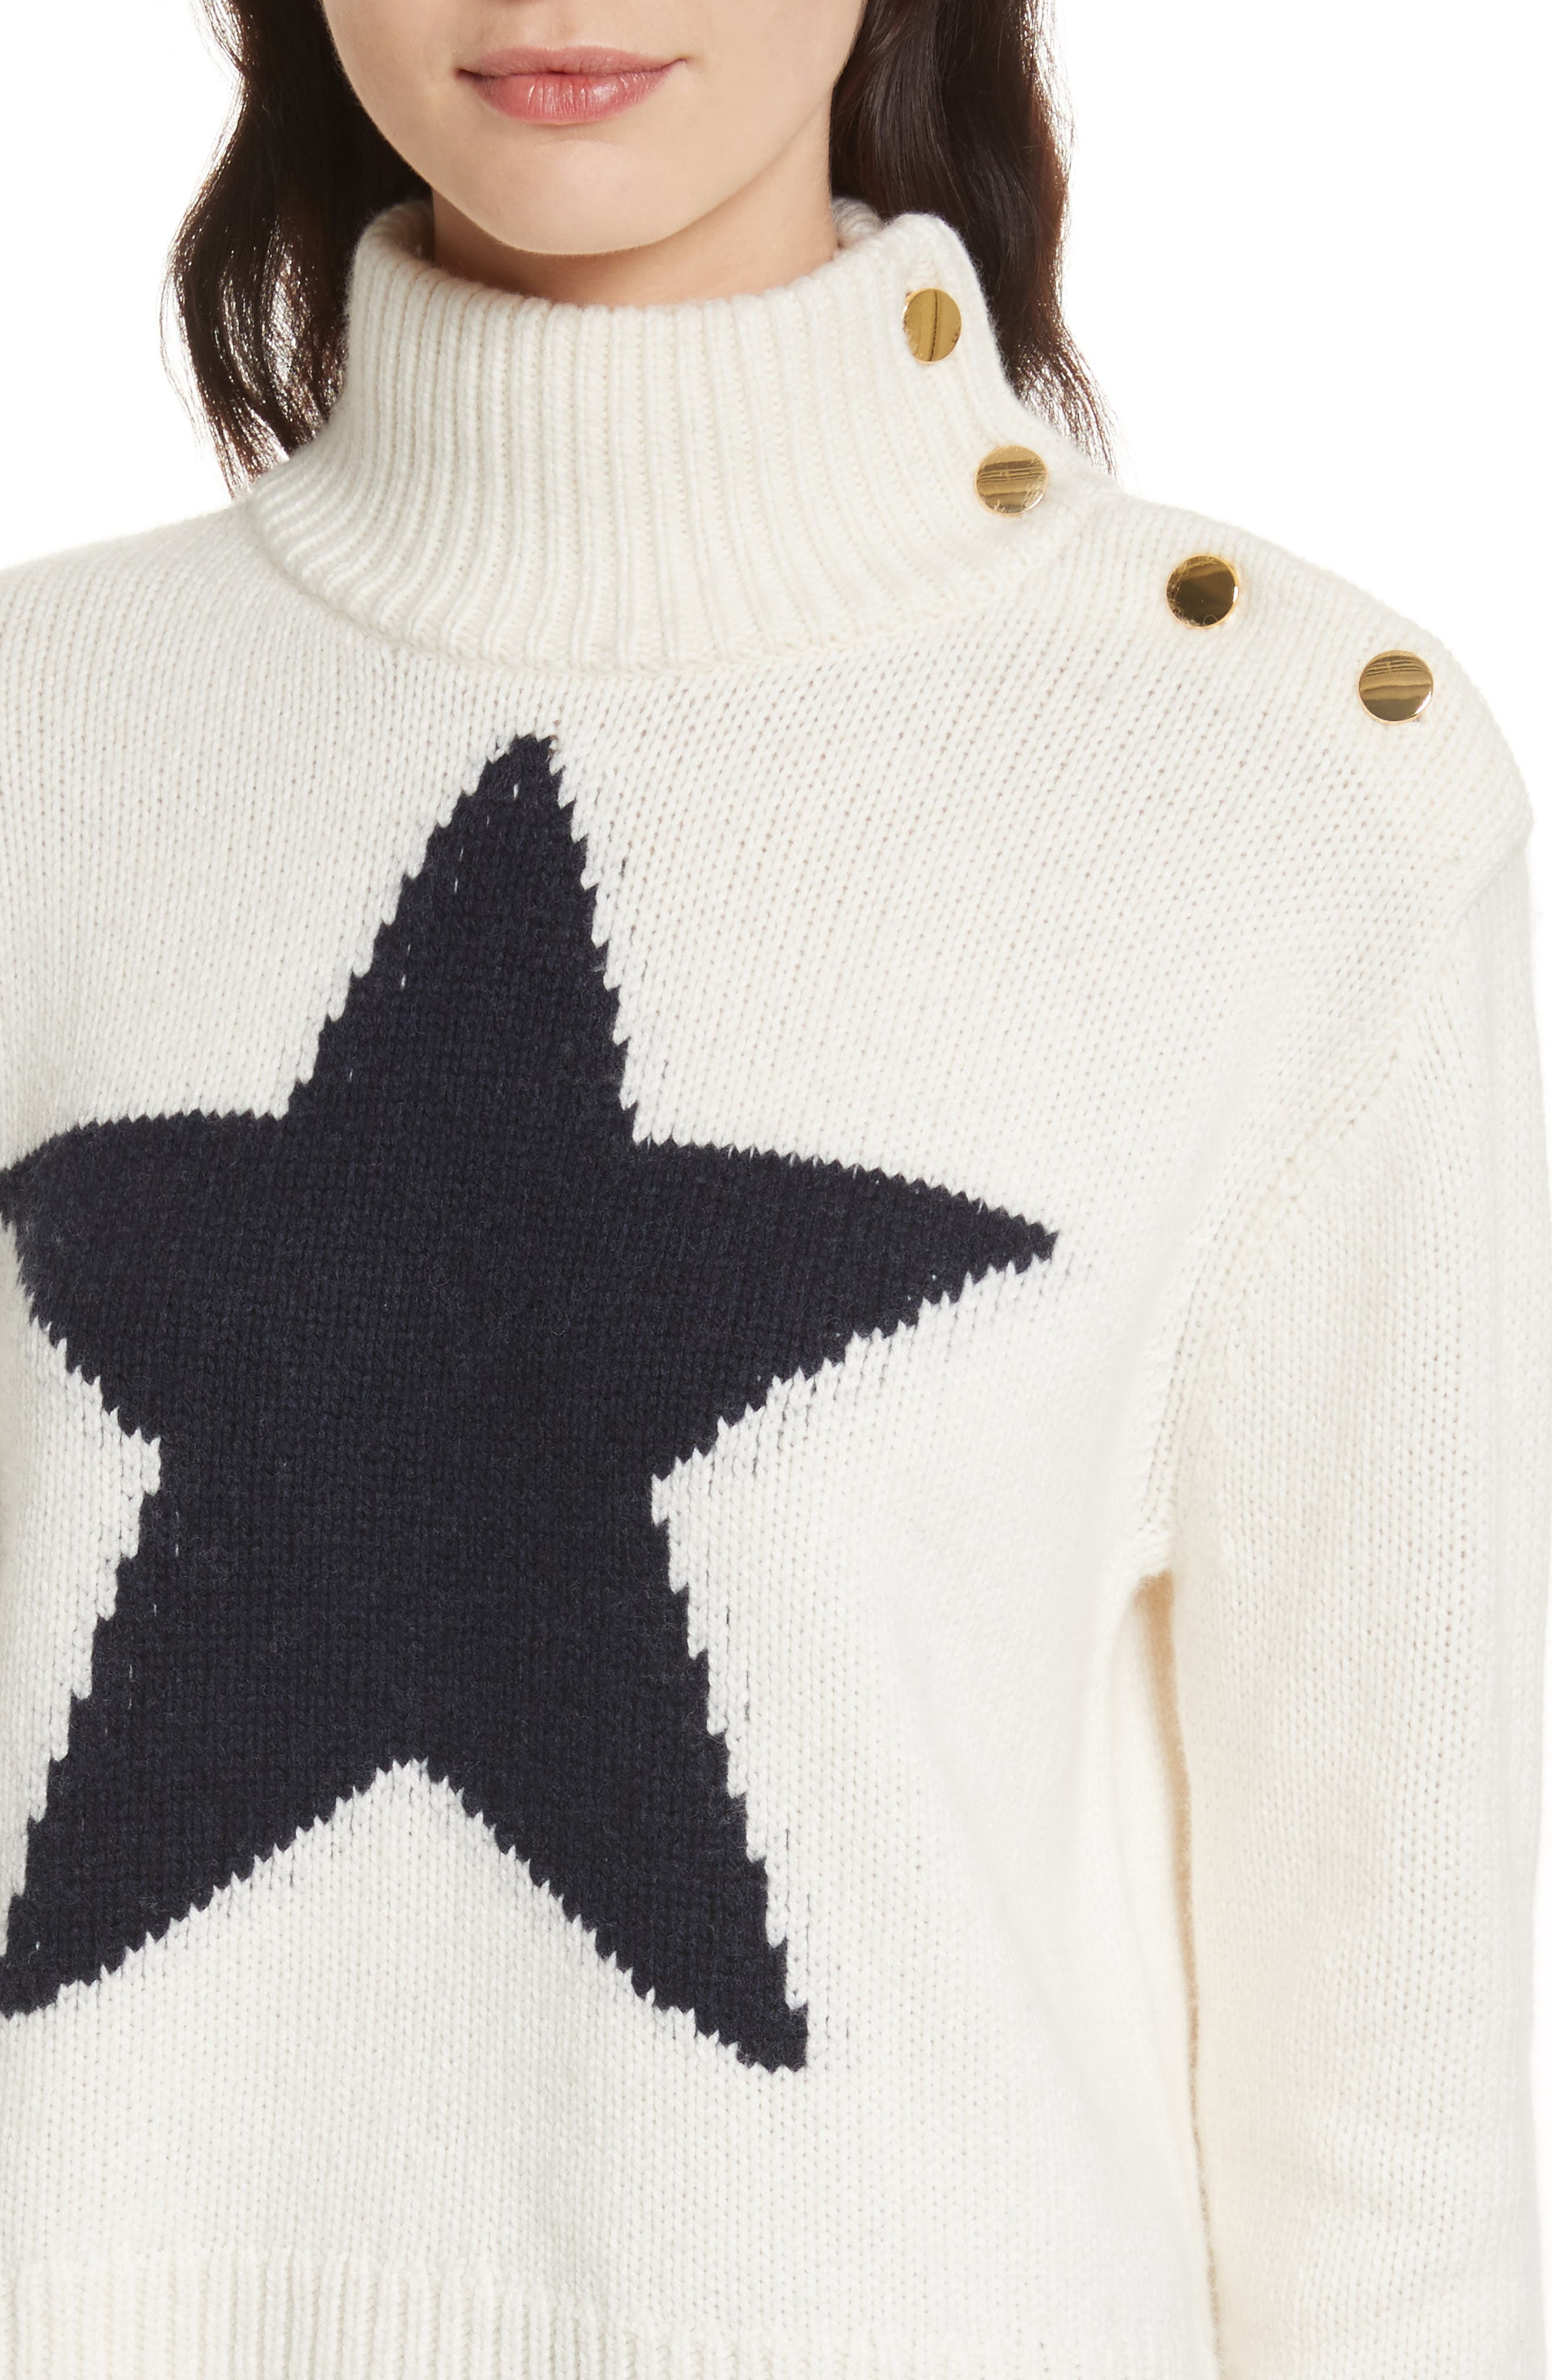 star turtleneck sweater,                             Alternate thumbnail 4, color,                             251